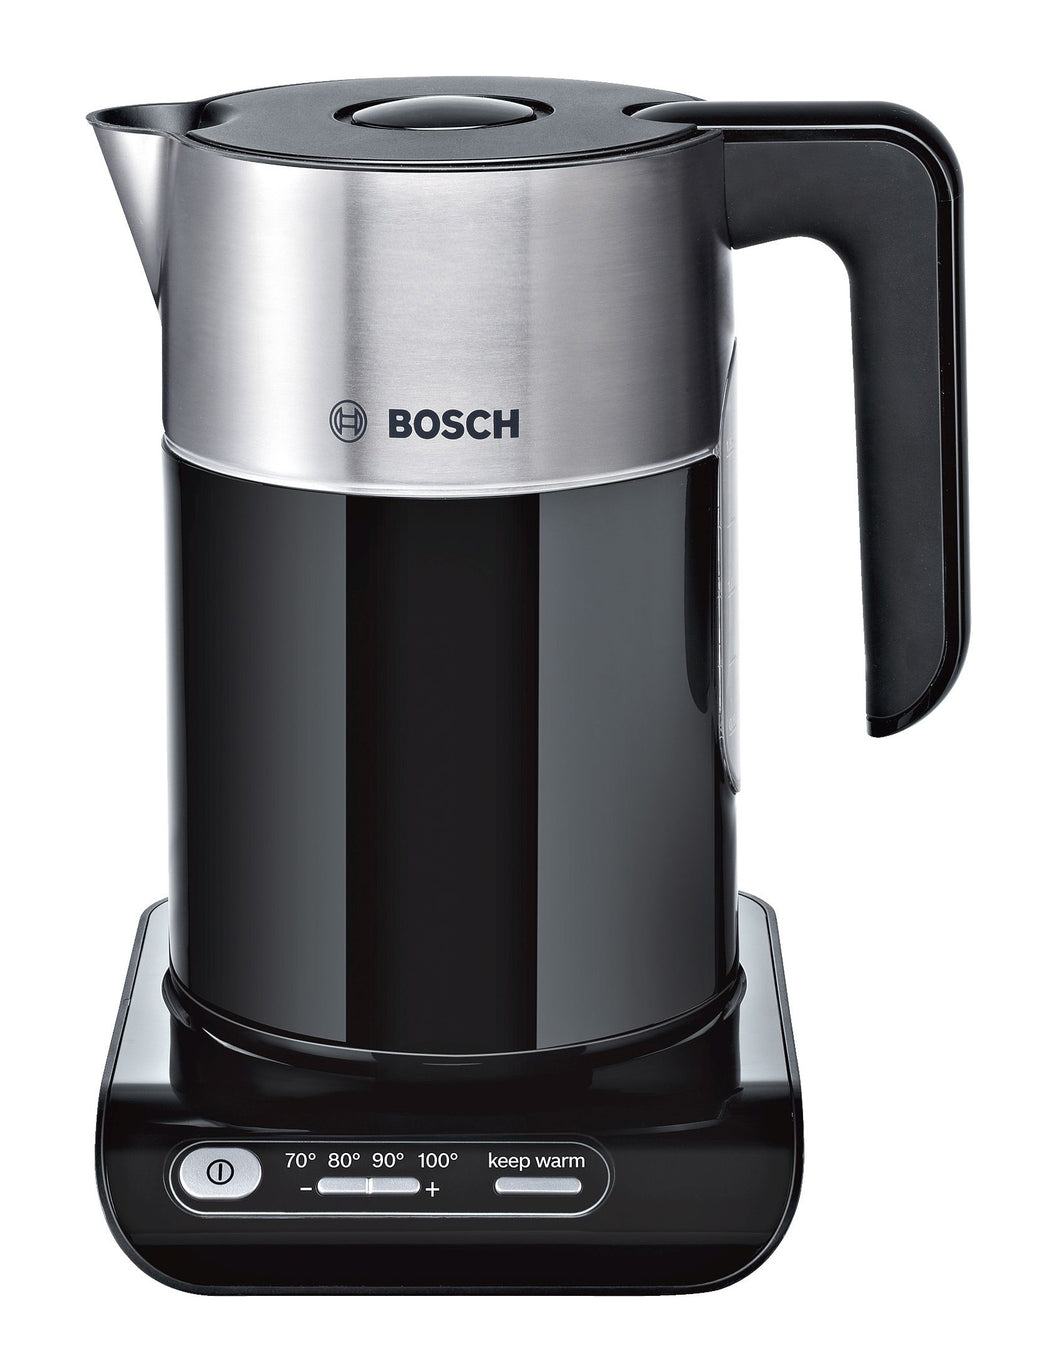 Bosch Styline Kettle 1.5L TWK8631GB - Variable Temperature Control